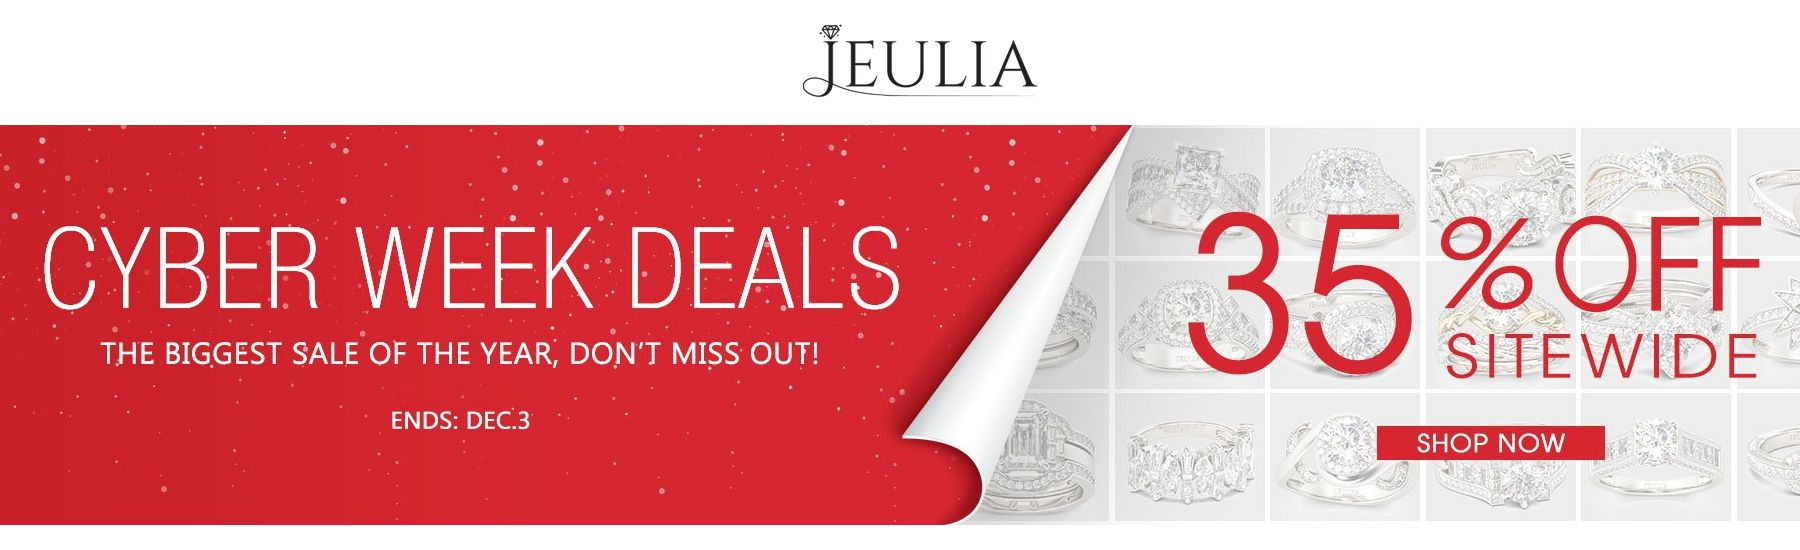 Jeulia Cyber Week Deals Get 35 Off Sitewide Flashsale Jewelery Womens Weekend Girls Fashion Jeulia Coupon Codes Promo Codes